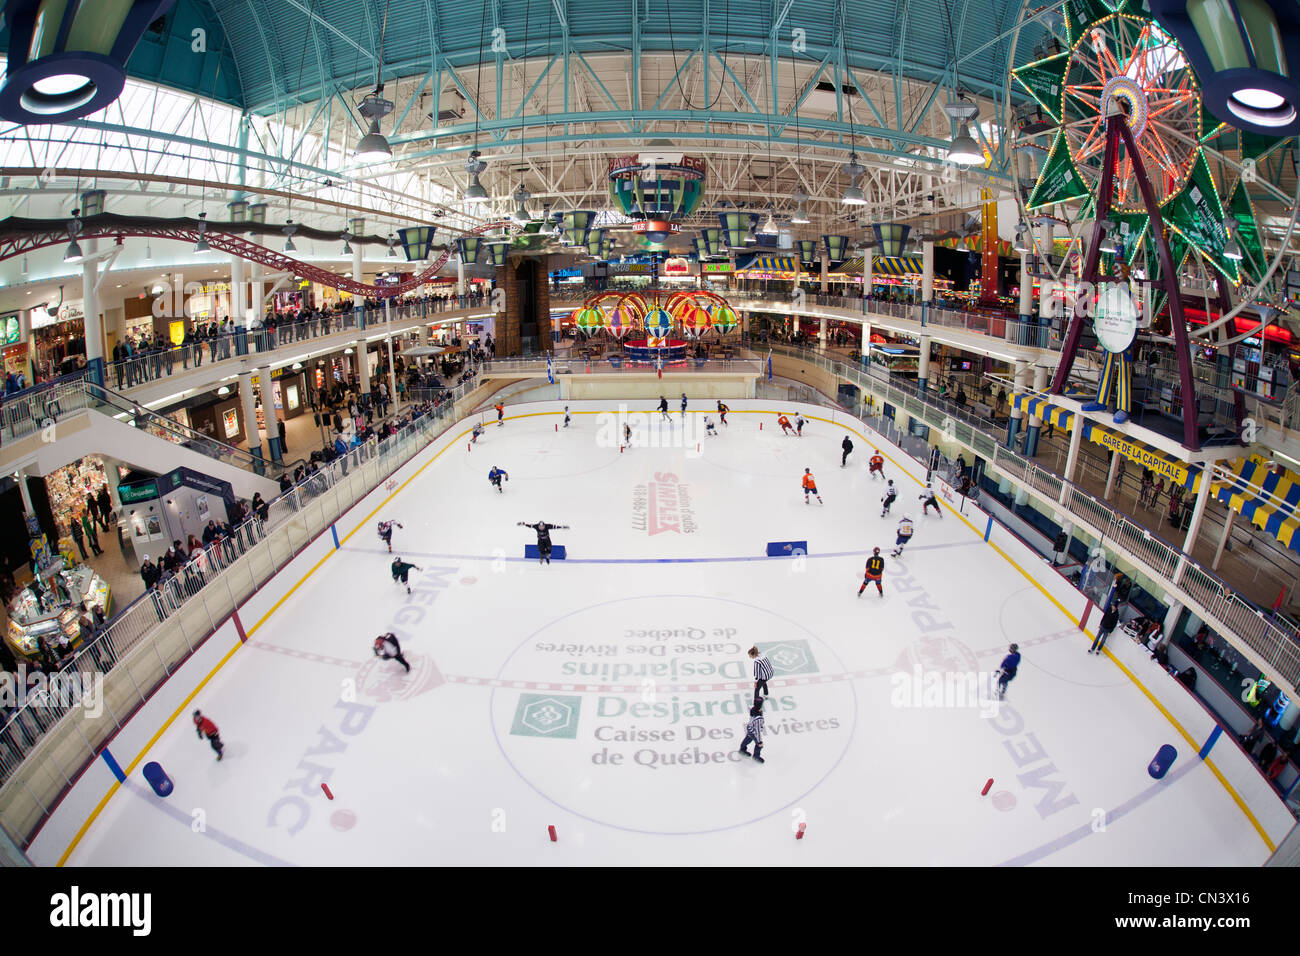 Canada, Quebec province, Quebec, the Galleries de la Capitale Mall and its ice arena - Stock Image